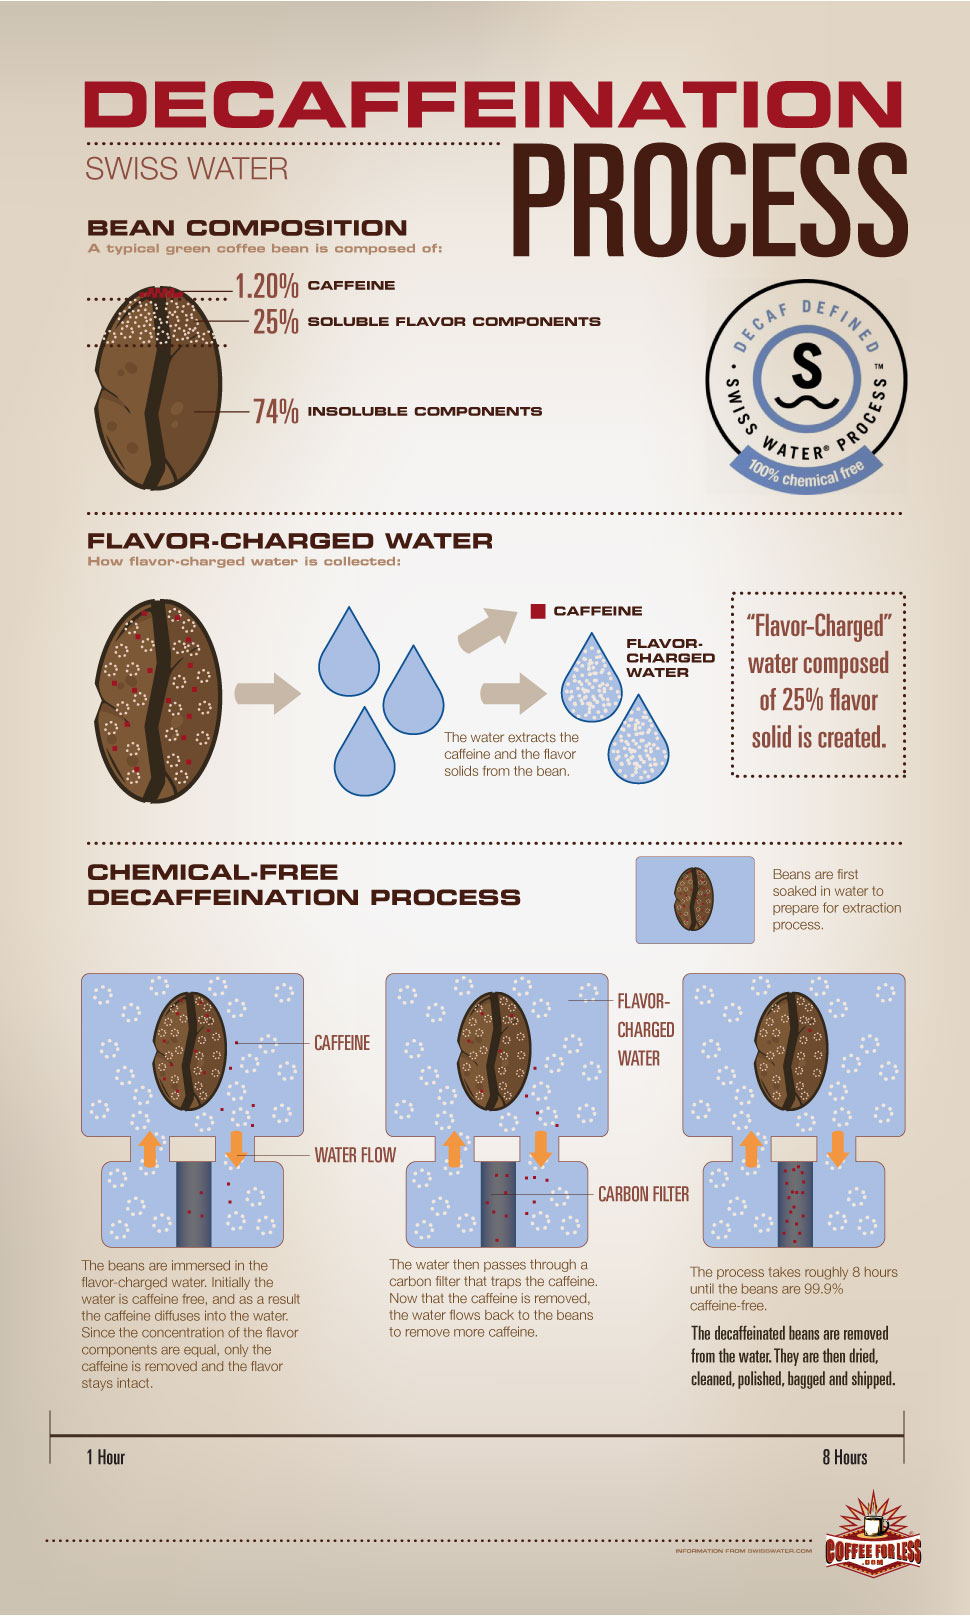 swiss-water-decaffeination-process